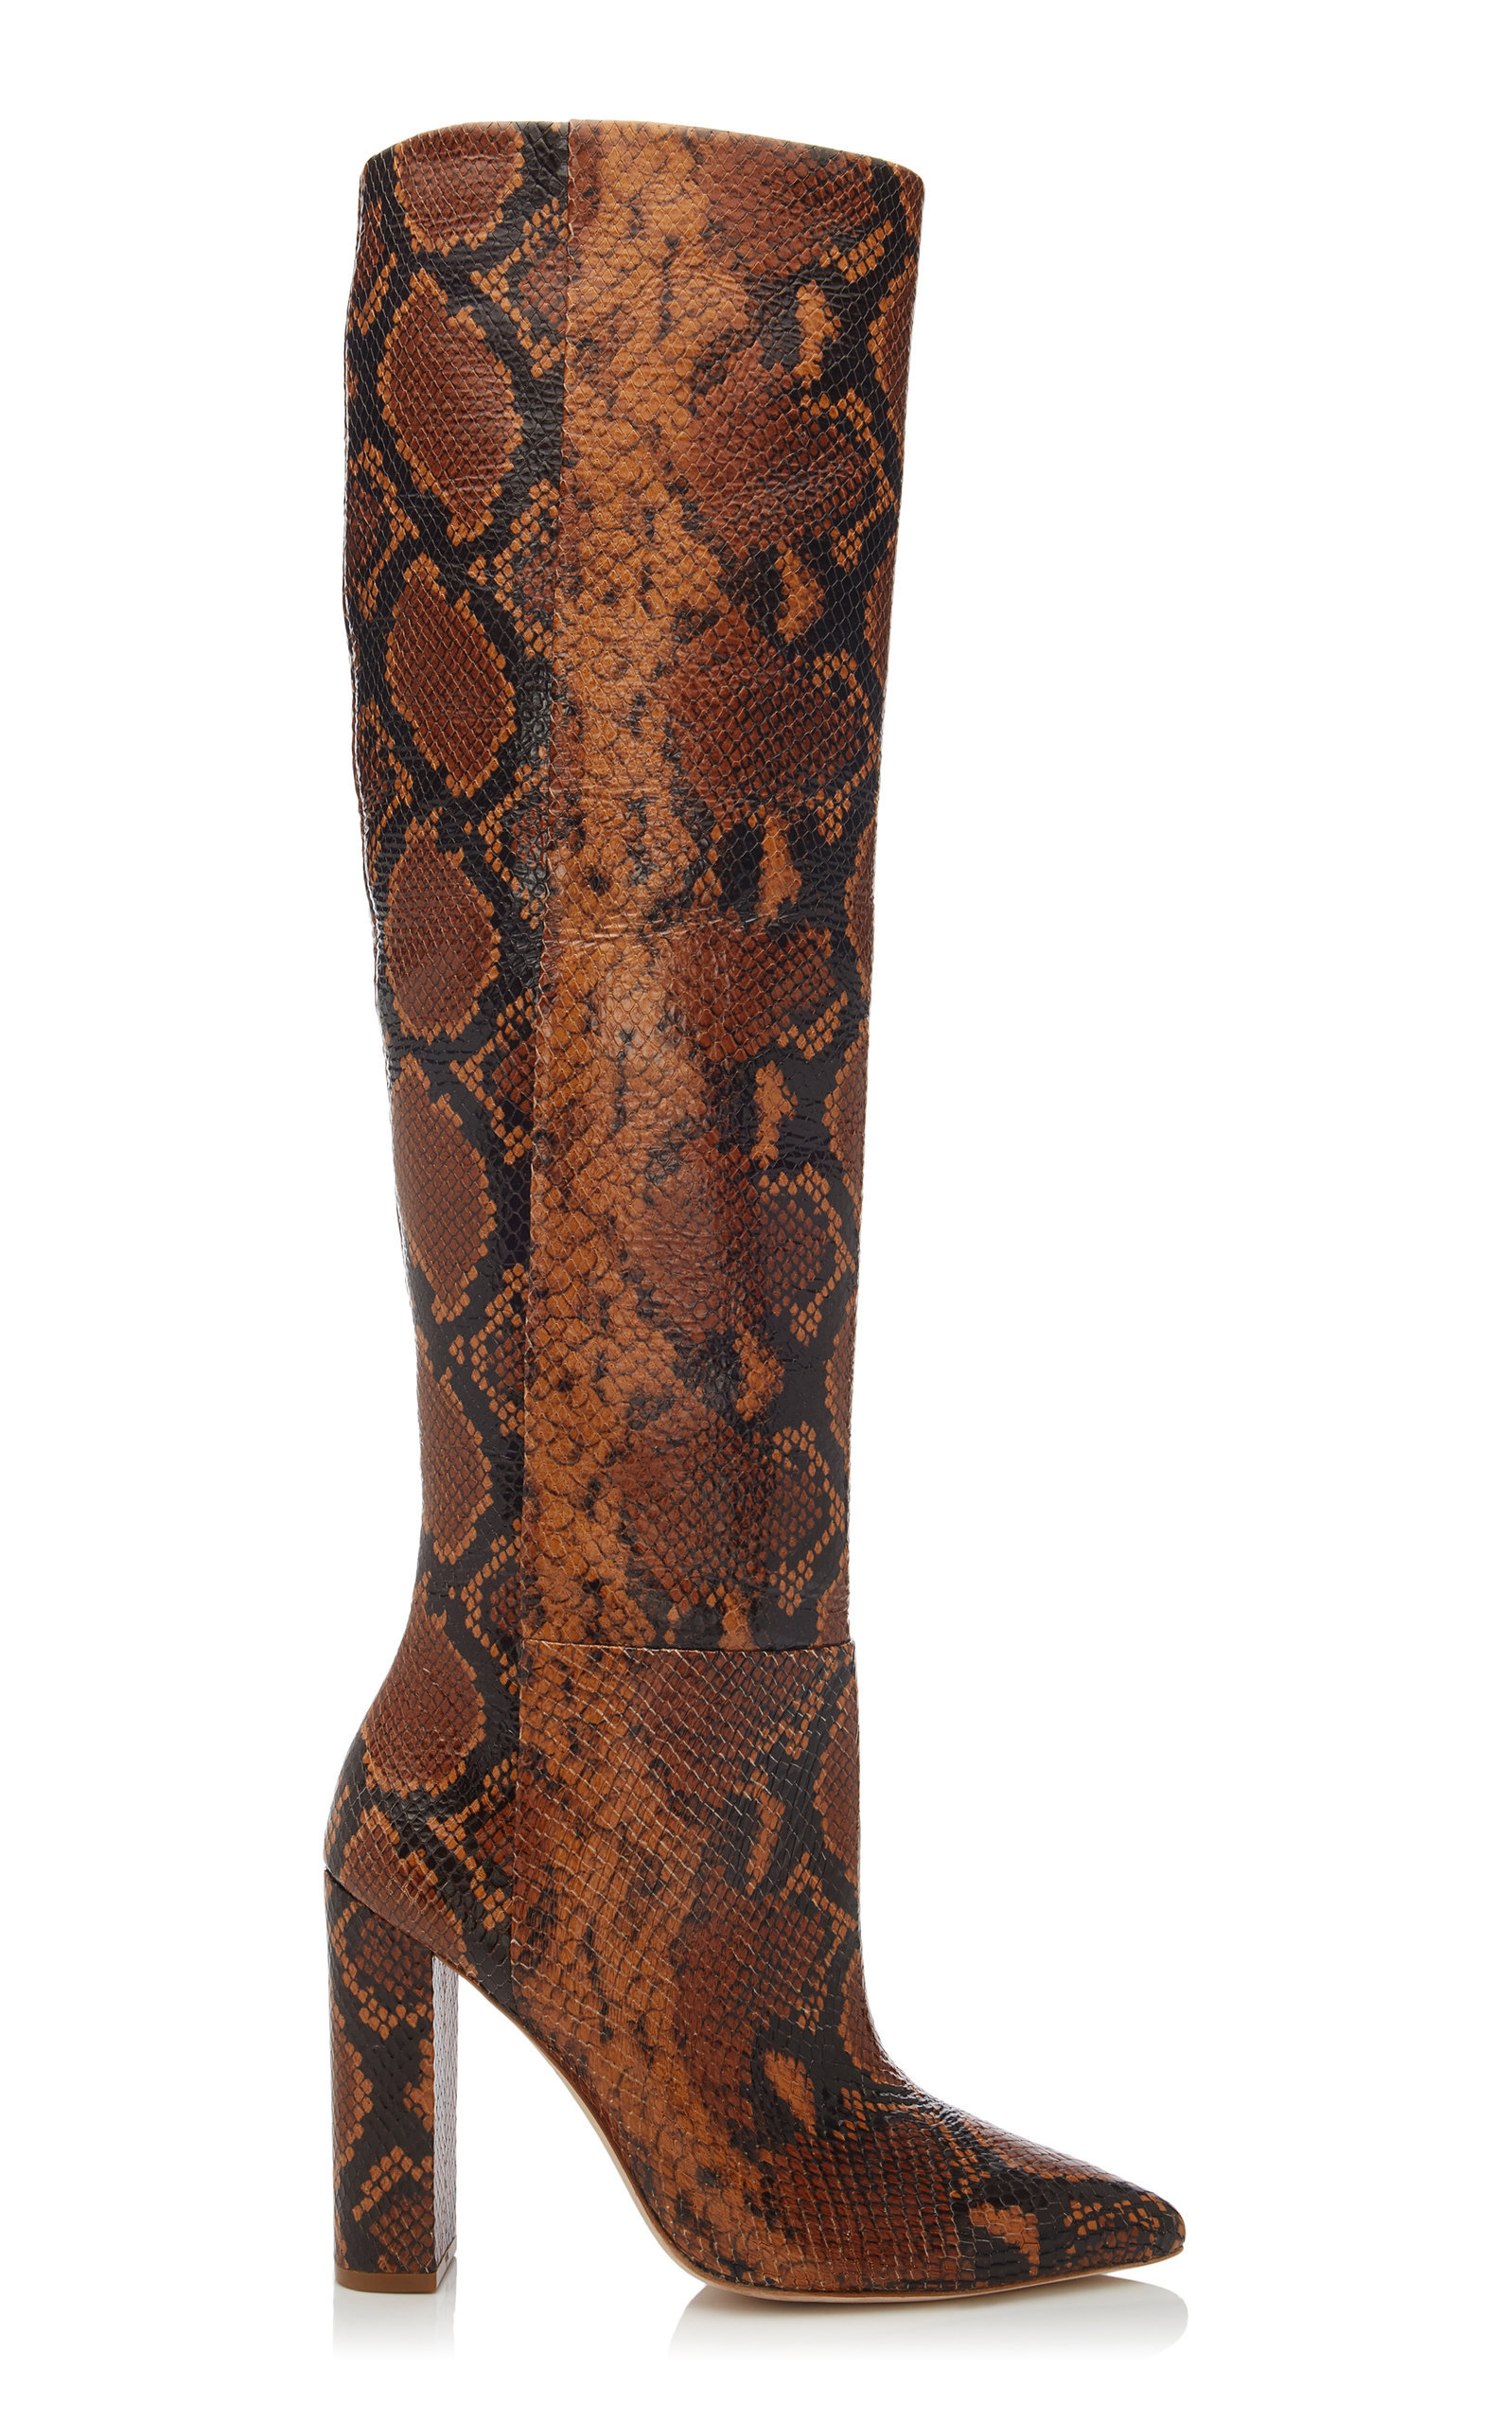 Jerri Snake-Effect Leather Boots | $795